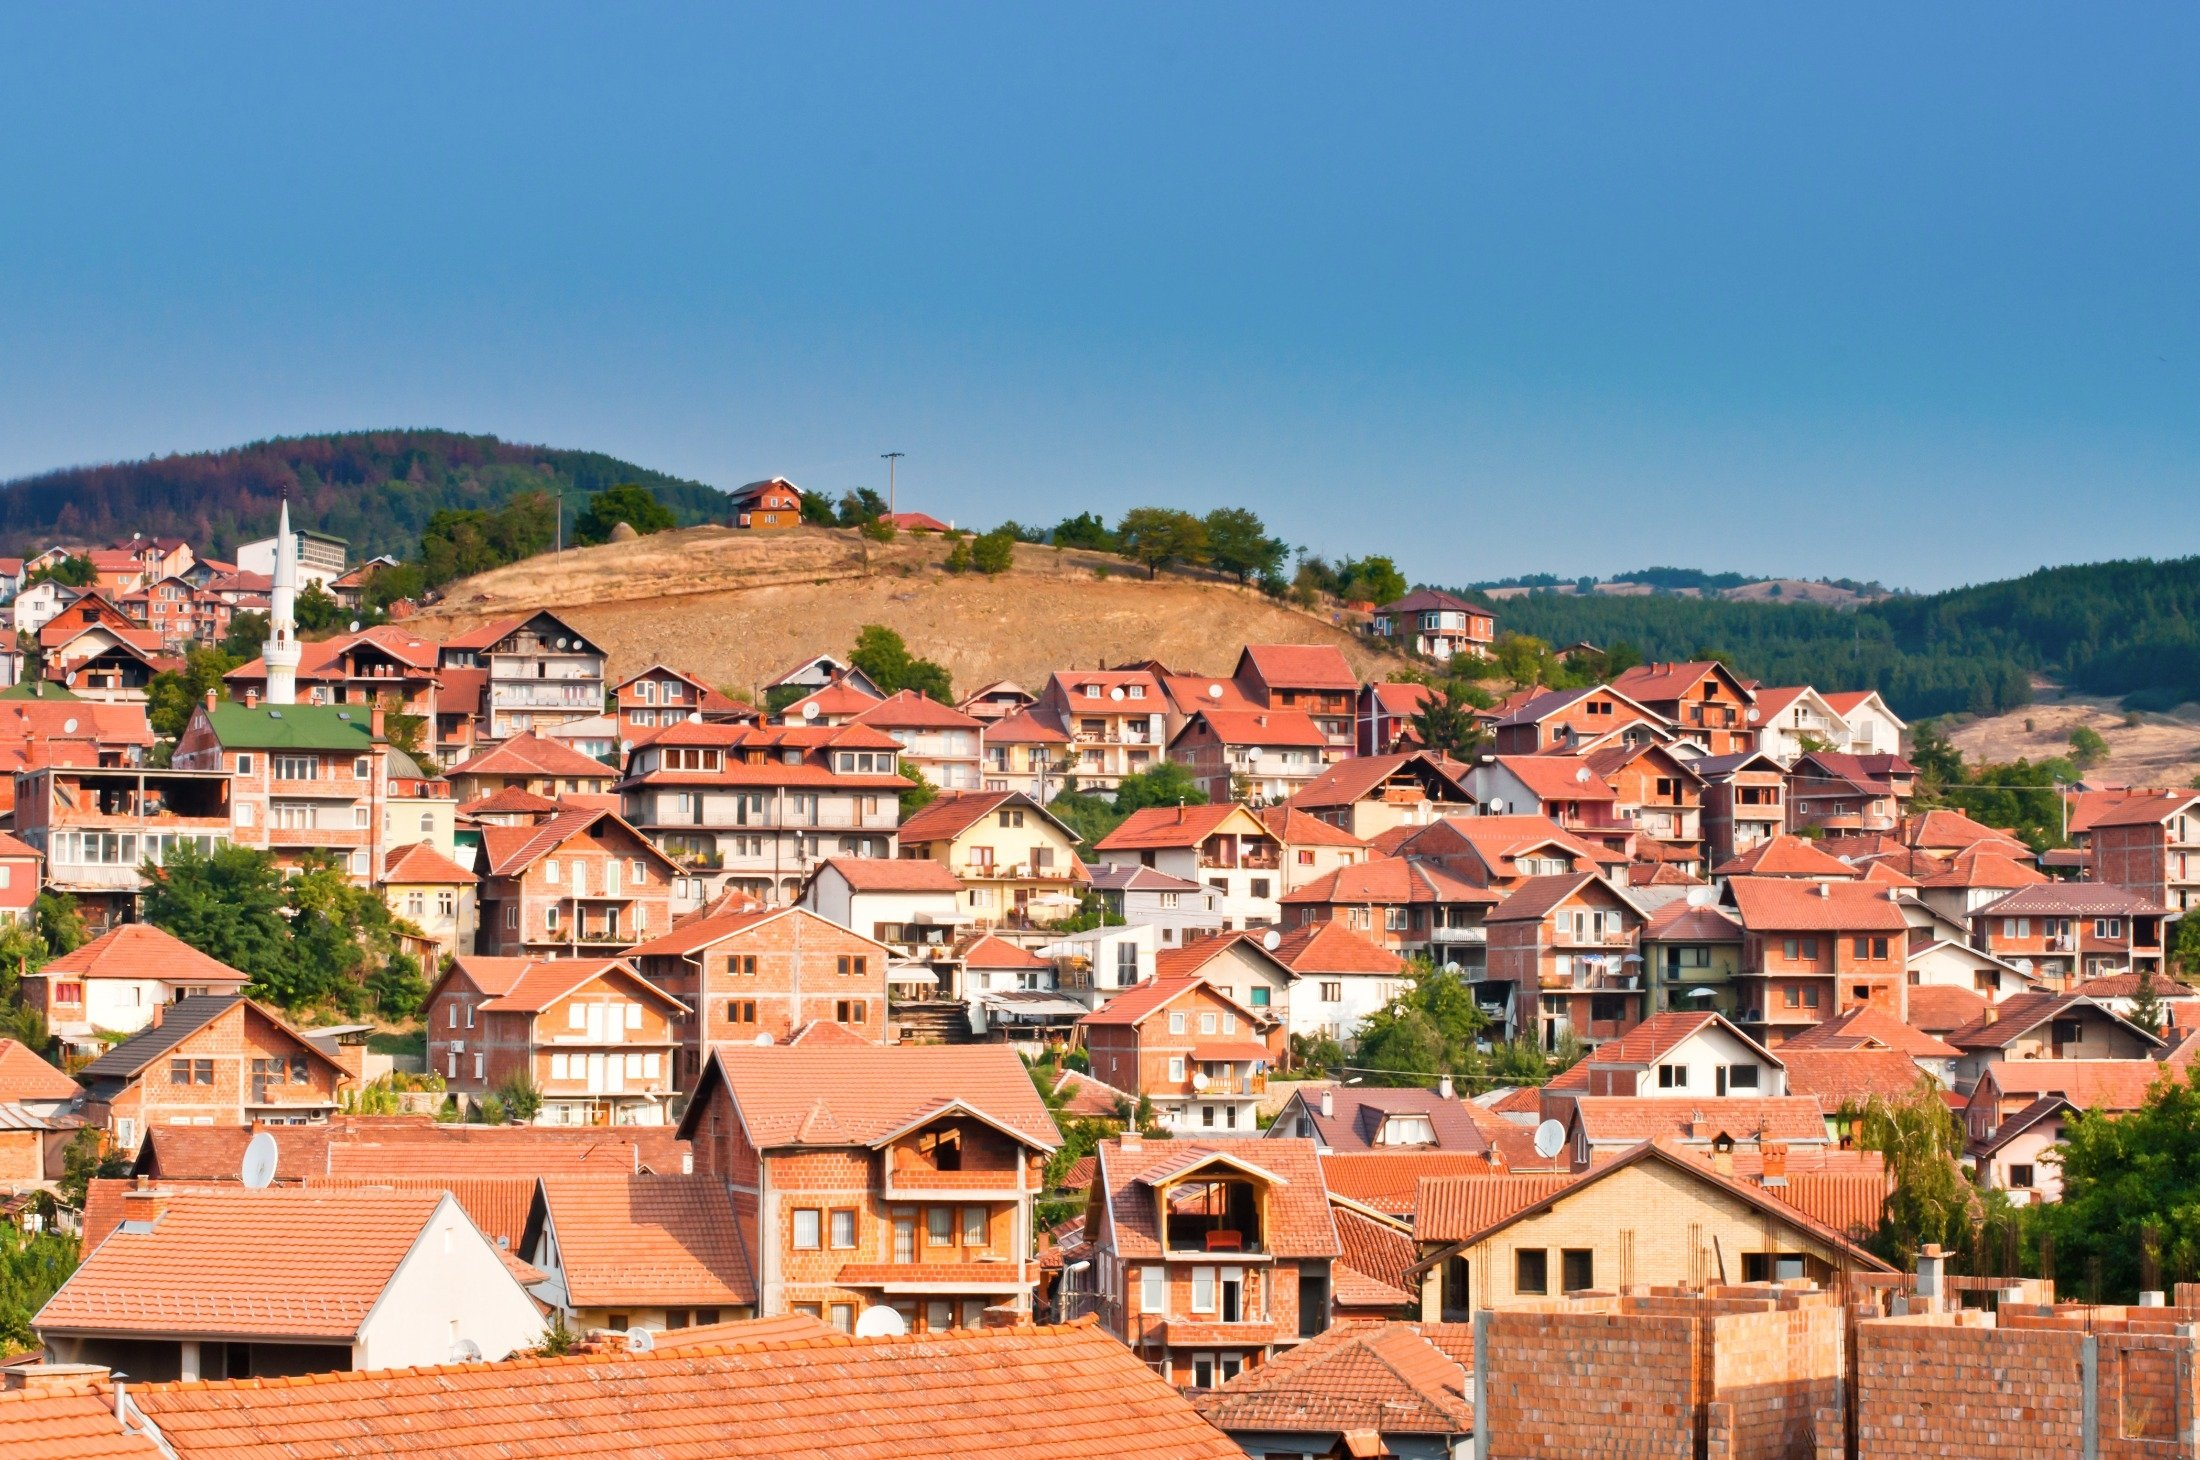 A general view shows the historical buildings and the minaret of a mosque in Novi Pazar, Serbia. (Shutterstock Photo)